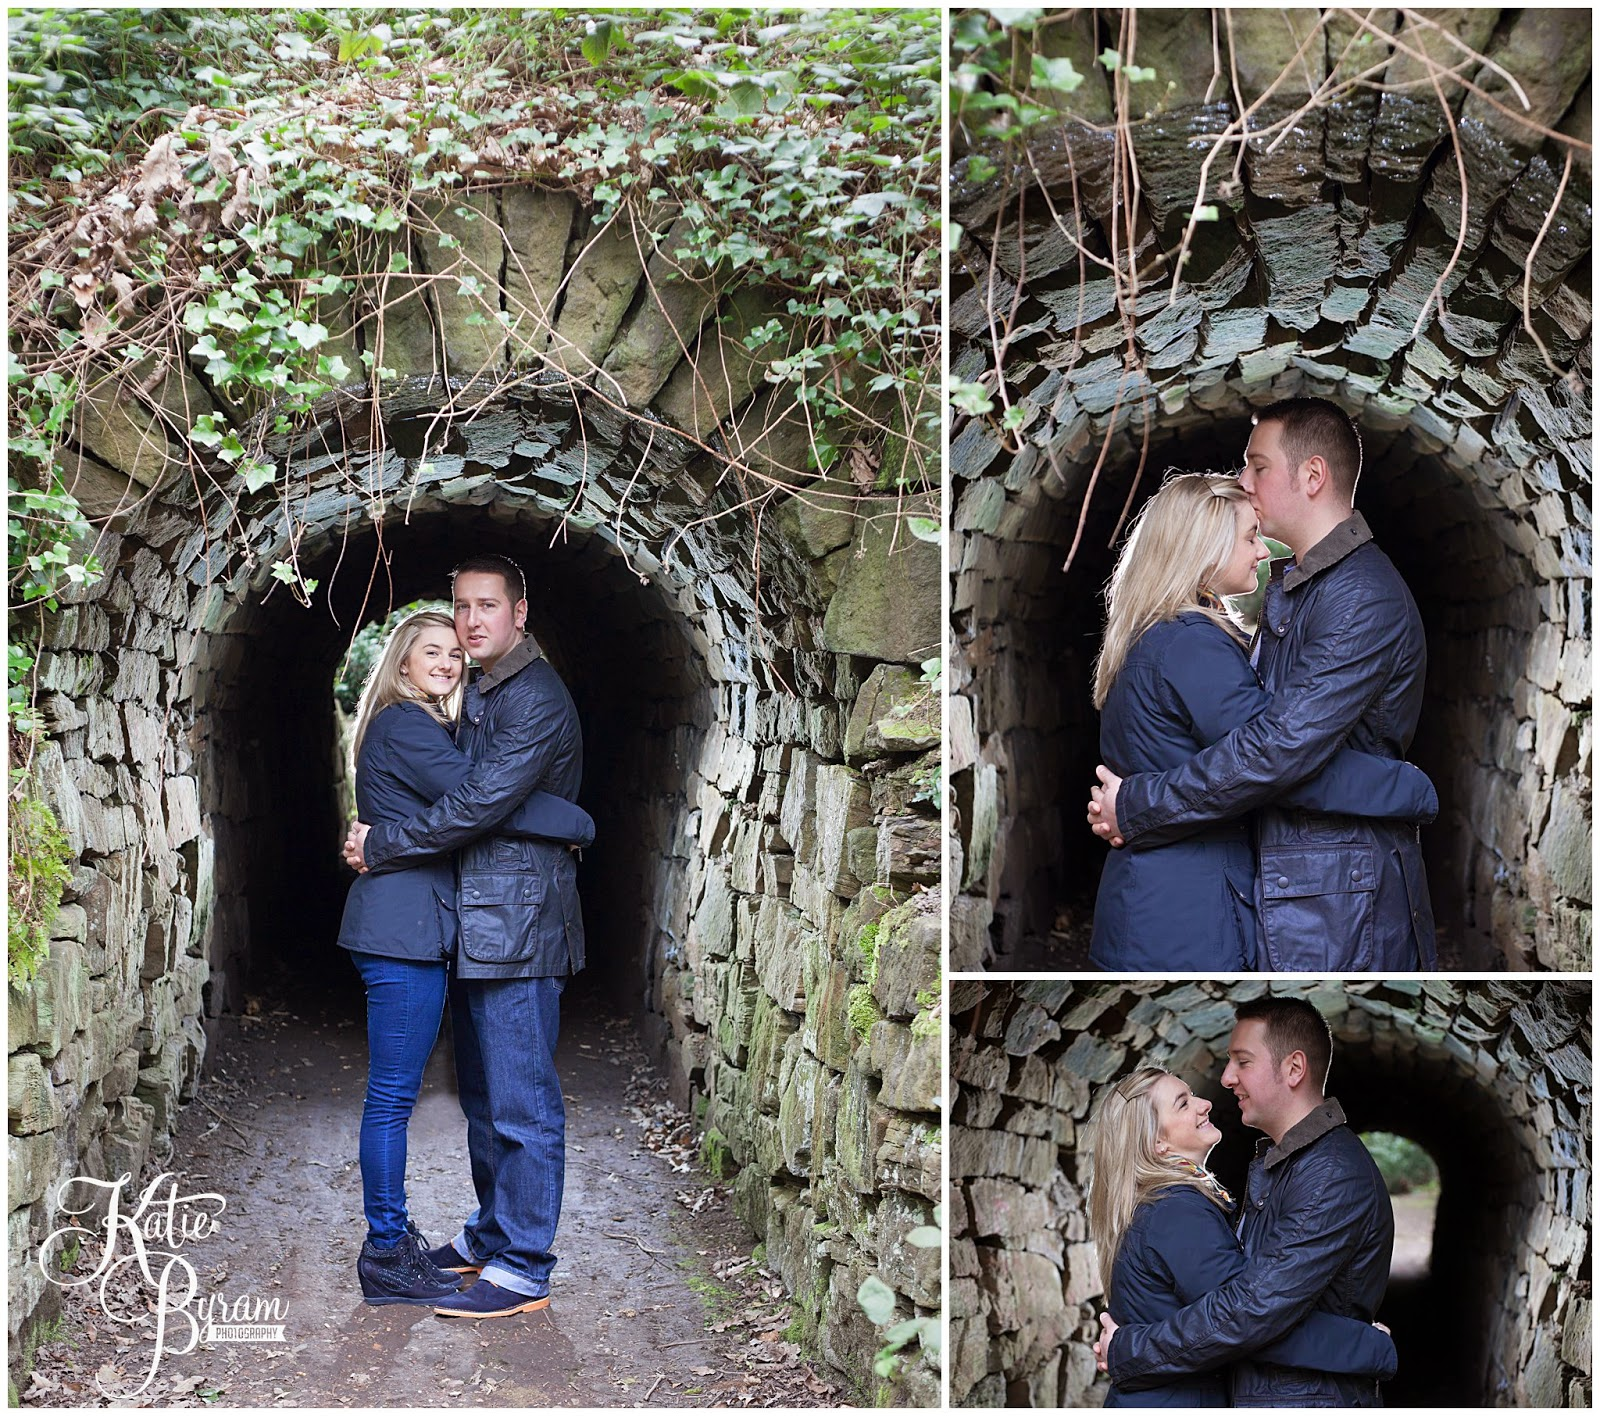 newcastle wedding photographer, jesmond dene, jesmond dene wedding, pre-wedding photoshoot, jesmond pre-wedding shoot, katie byram photography, newcastle wedding photography, ellingham hall,